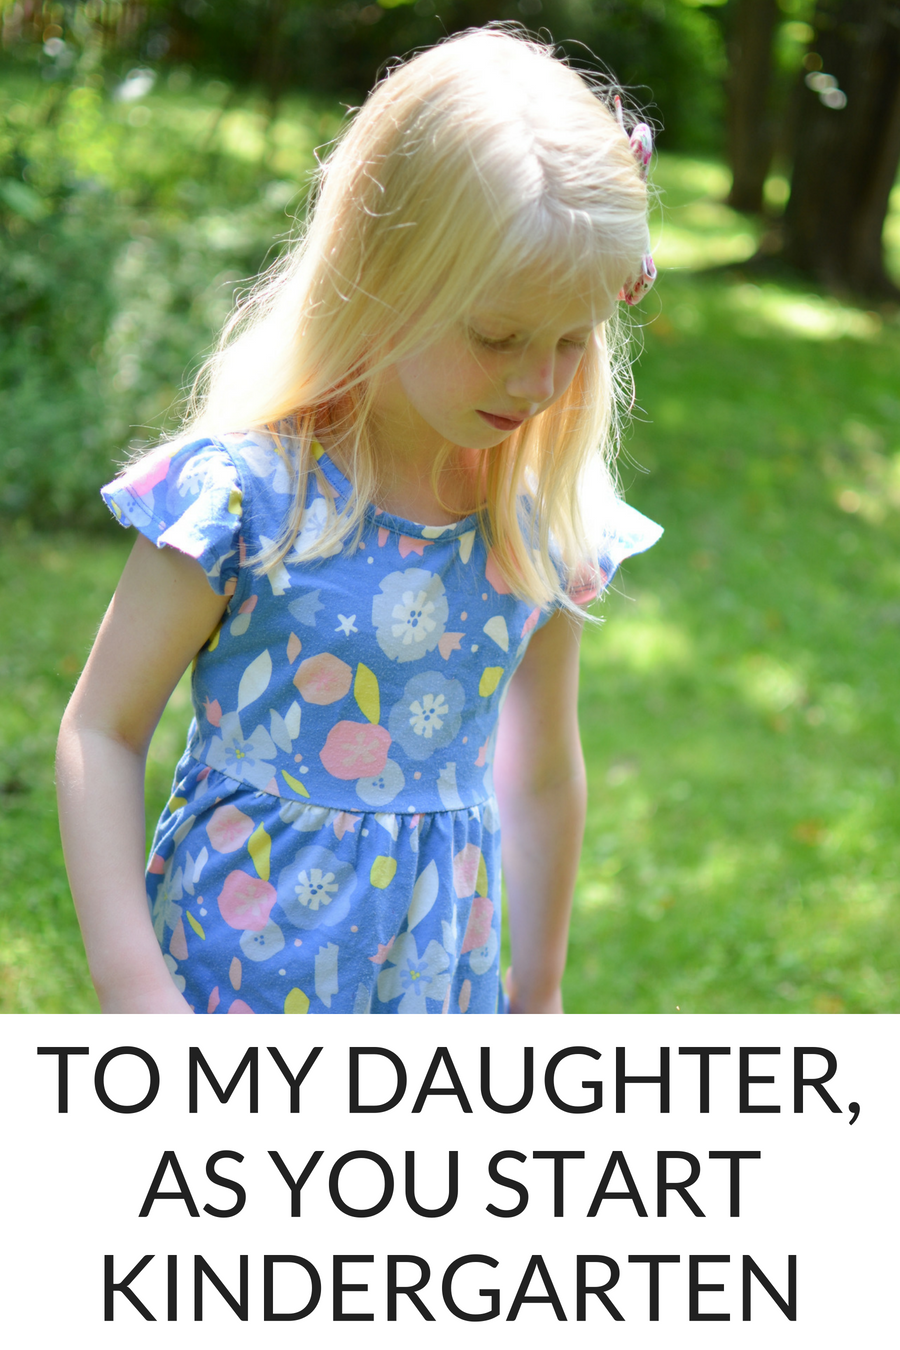 My Daughter is starting Kindergarten this year. She's more than ready, but before she starts - there are just a few things I want her to know.